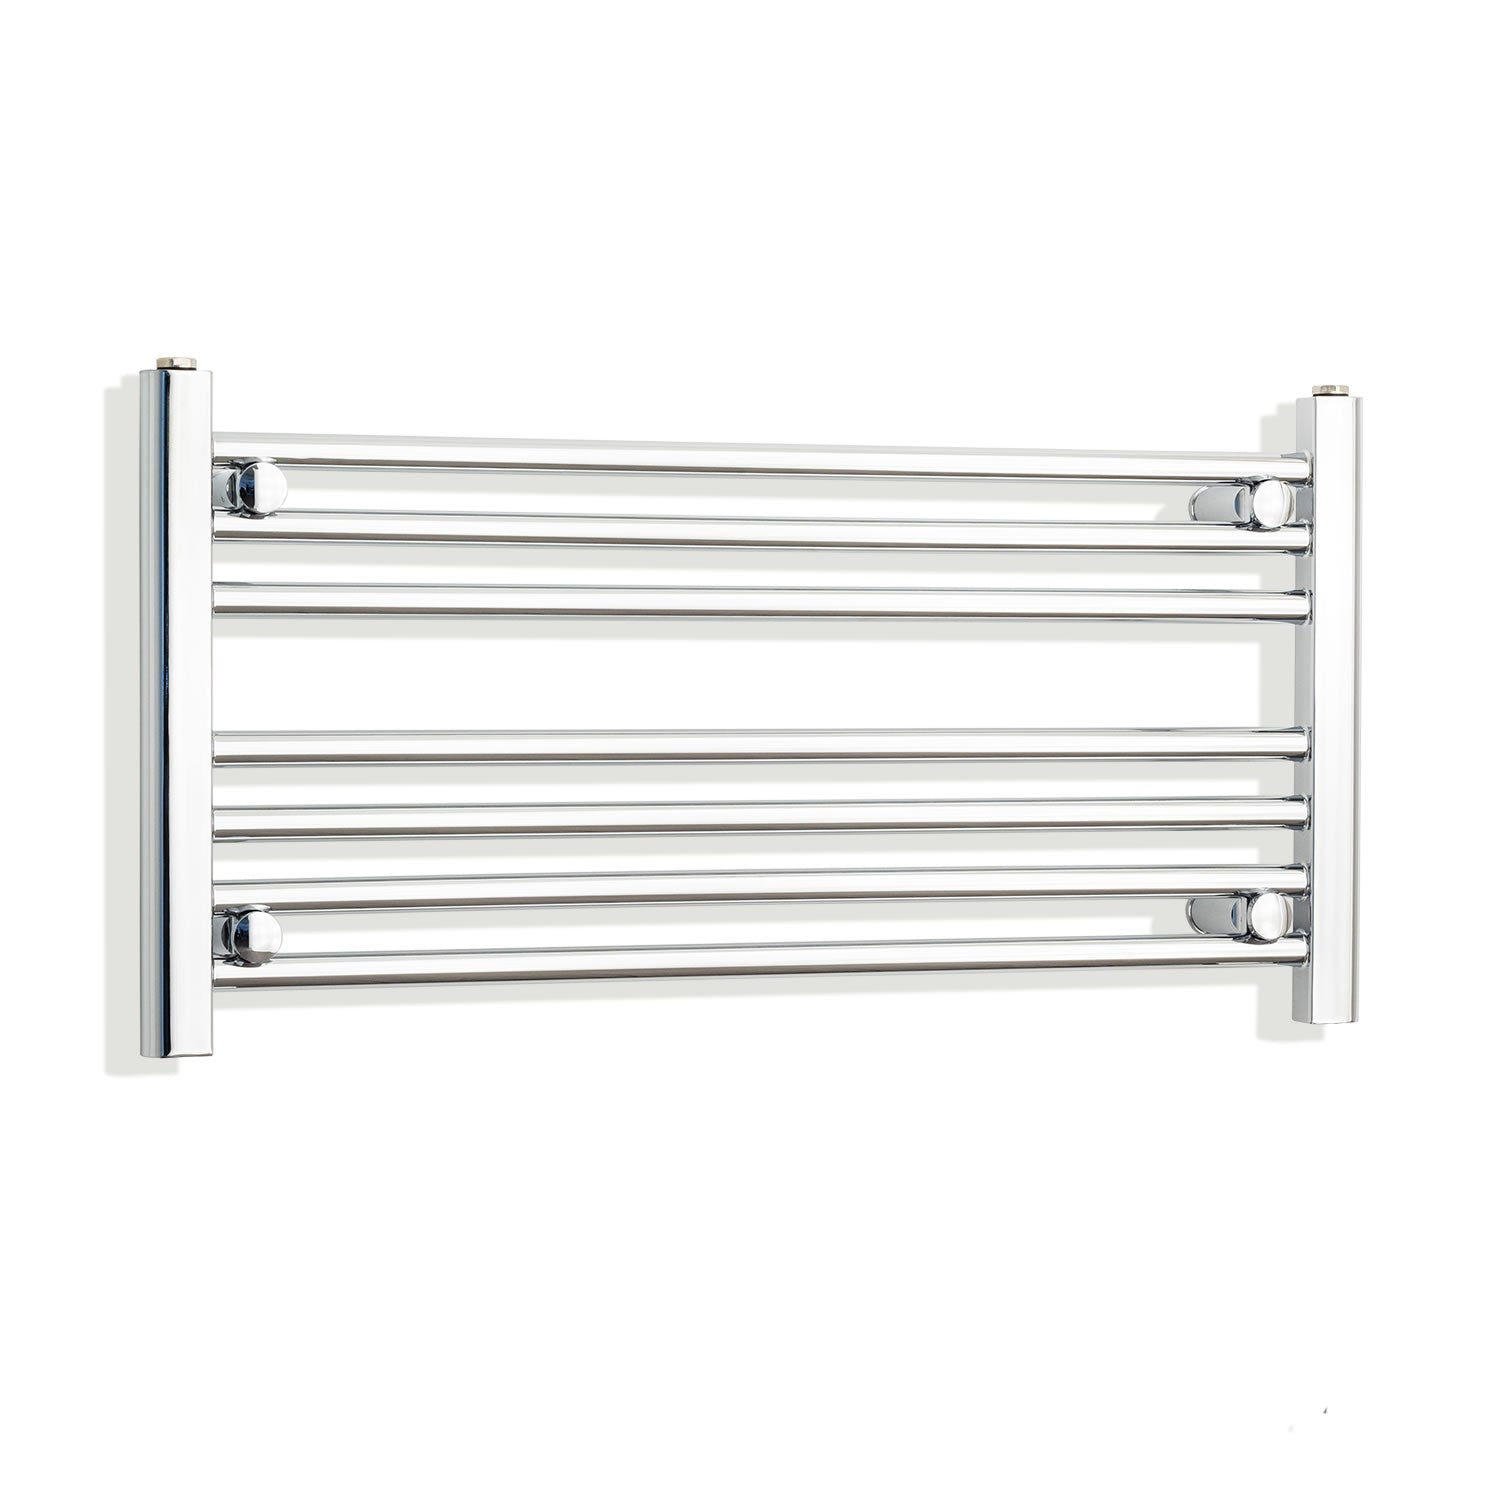 850mm Wide 400mm High Chrome Towel Rail Radiator